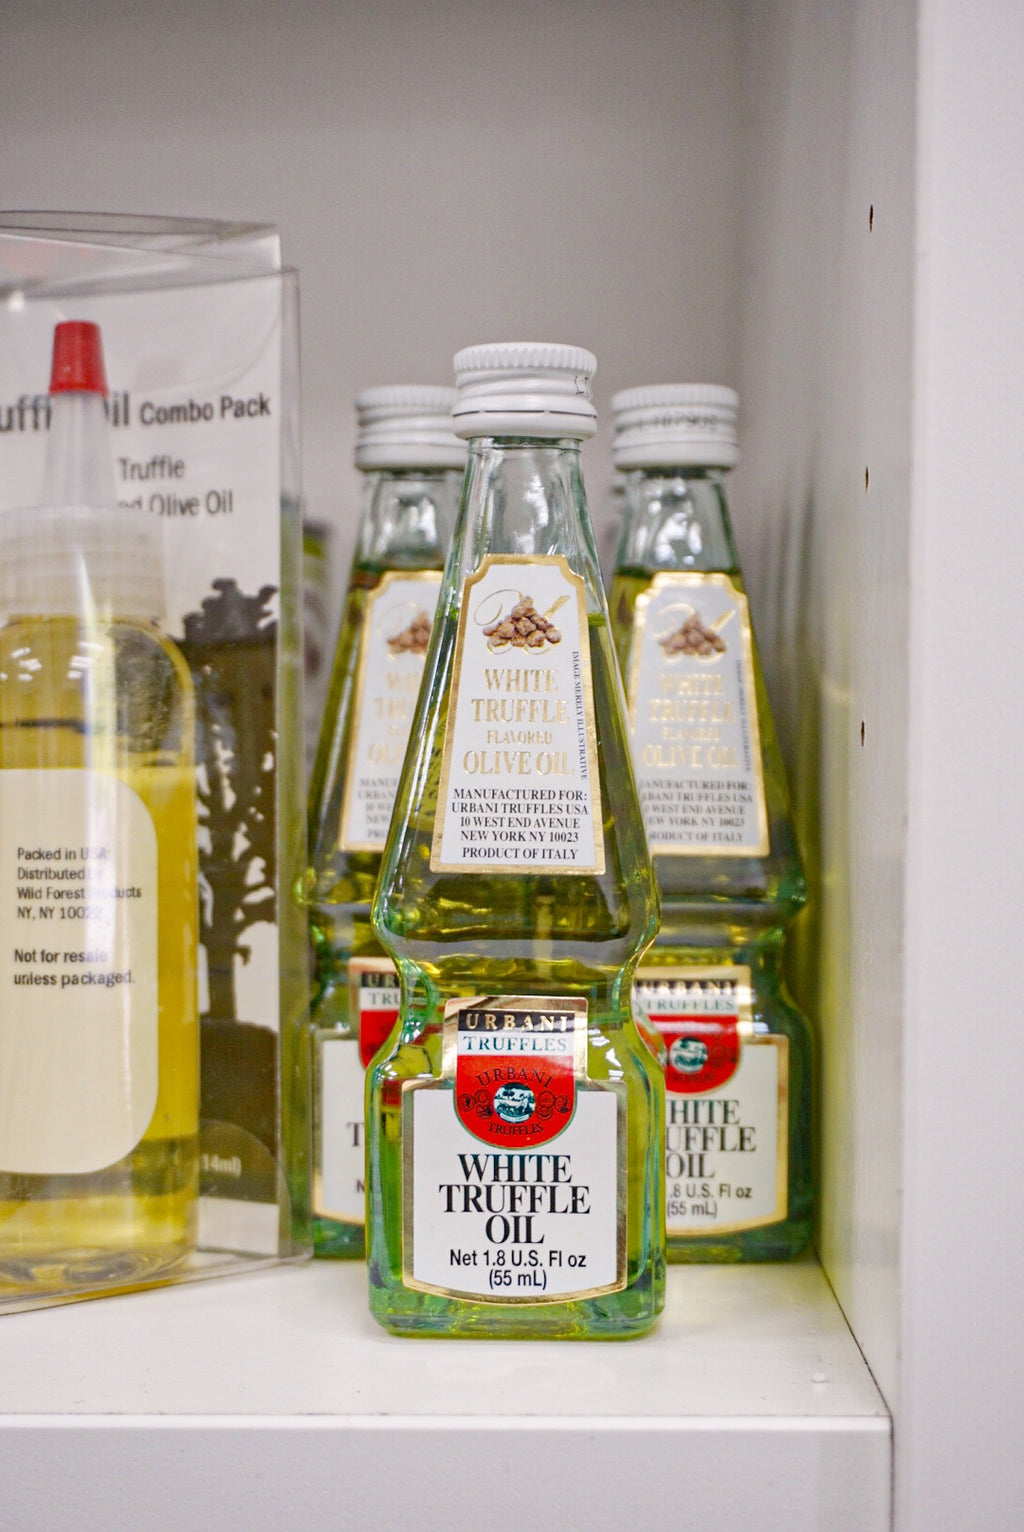 Urbani White Truffle Oil 1.8 oz Bottle - Westport